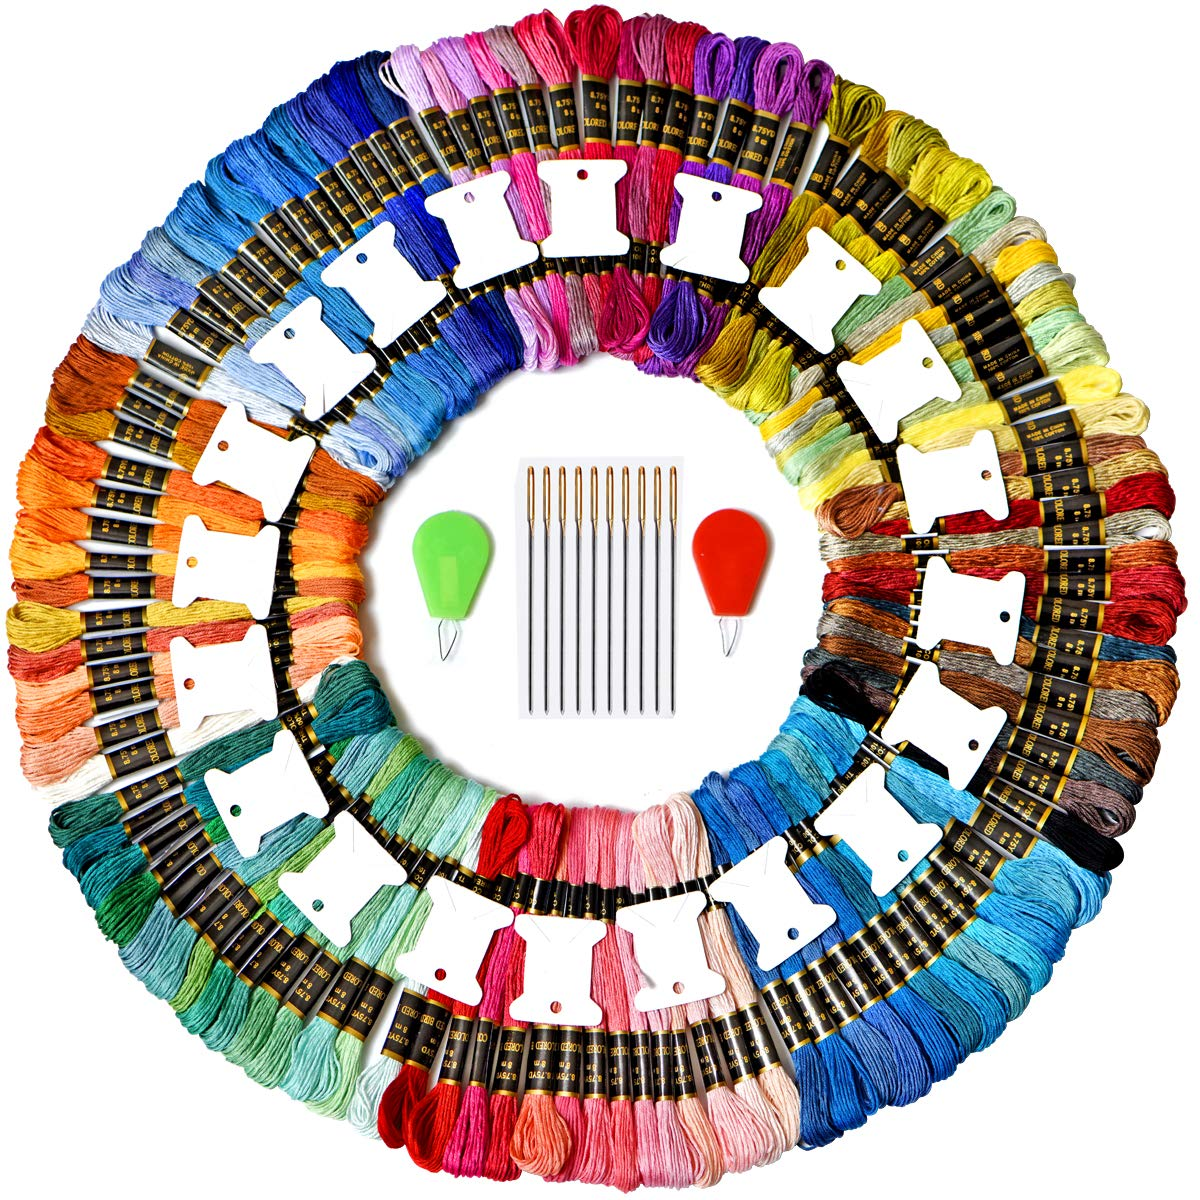 Colored Bird Embroidery Floss 142 Pack Embroidery Thread Friendship Bracelet Strings kit with Free Set of 20 pcs Organizer Floss Bobbins 10pcs Needles&2pcs Colorful Wire Loop Needle threaders cq